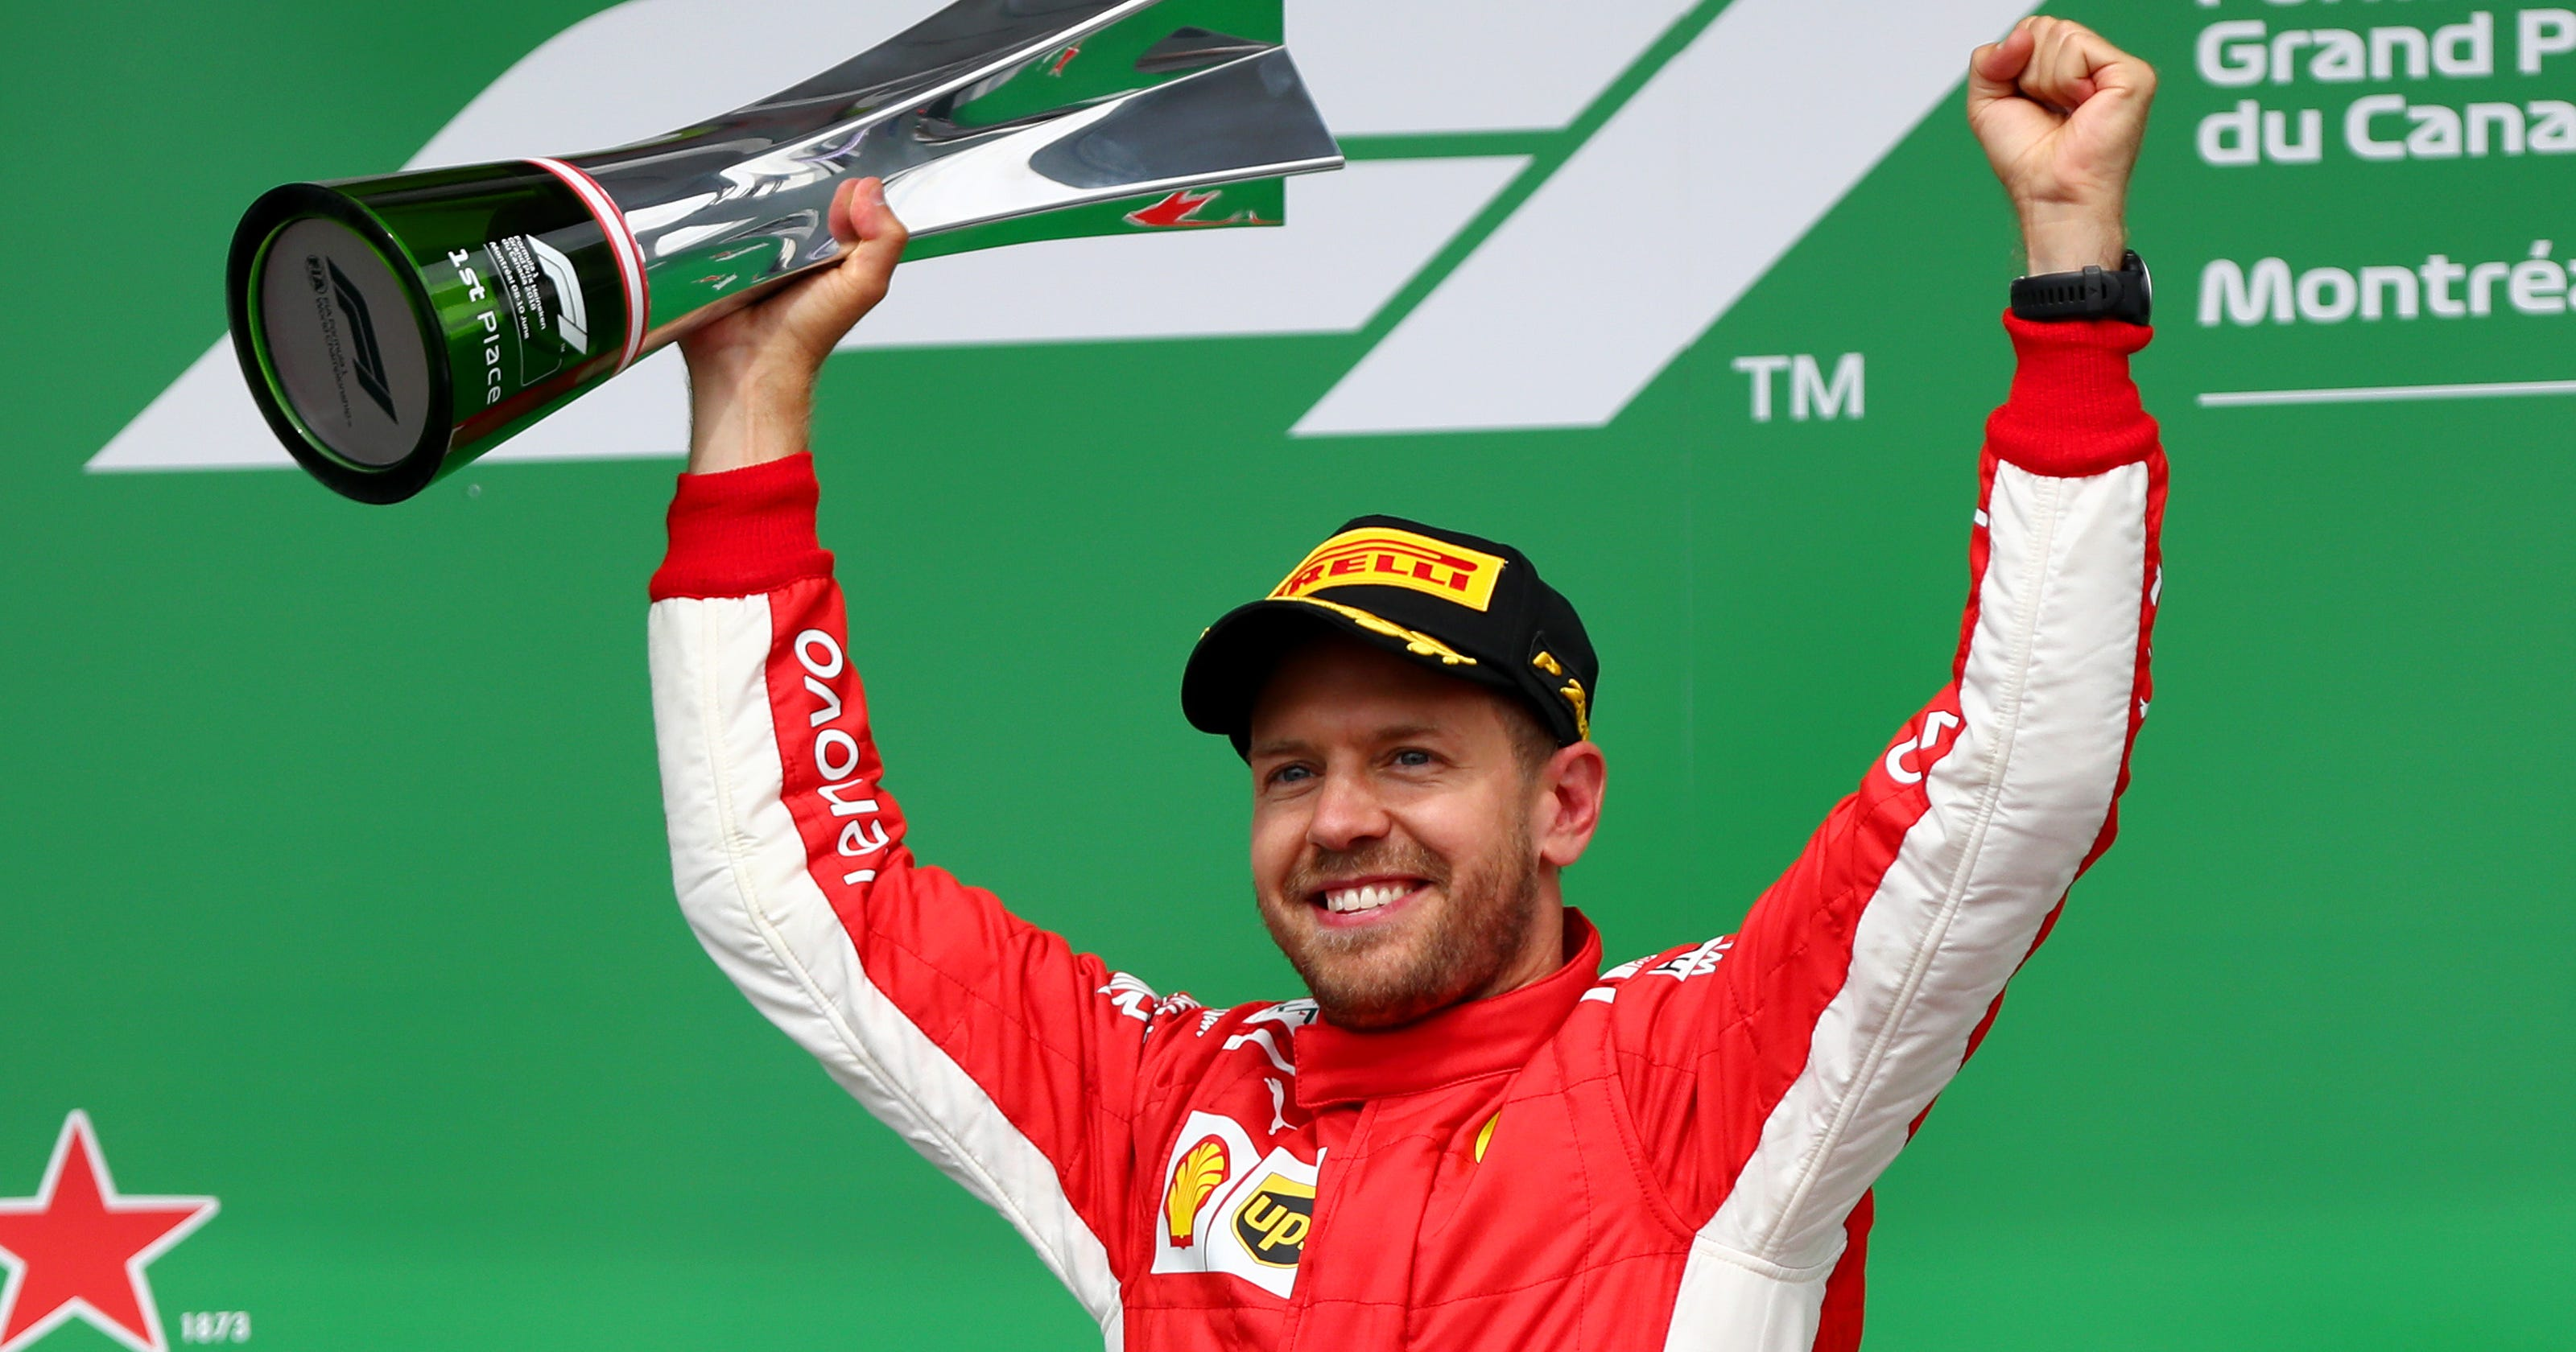 formula one sebastian vettel wins canadian grand prix for ferrari. Black Bedroom Furniture Sets. Home Design Ideas